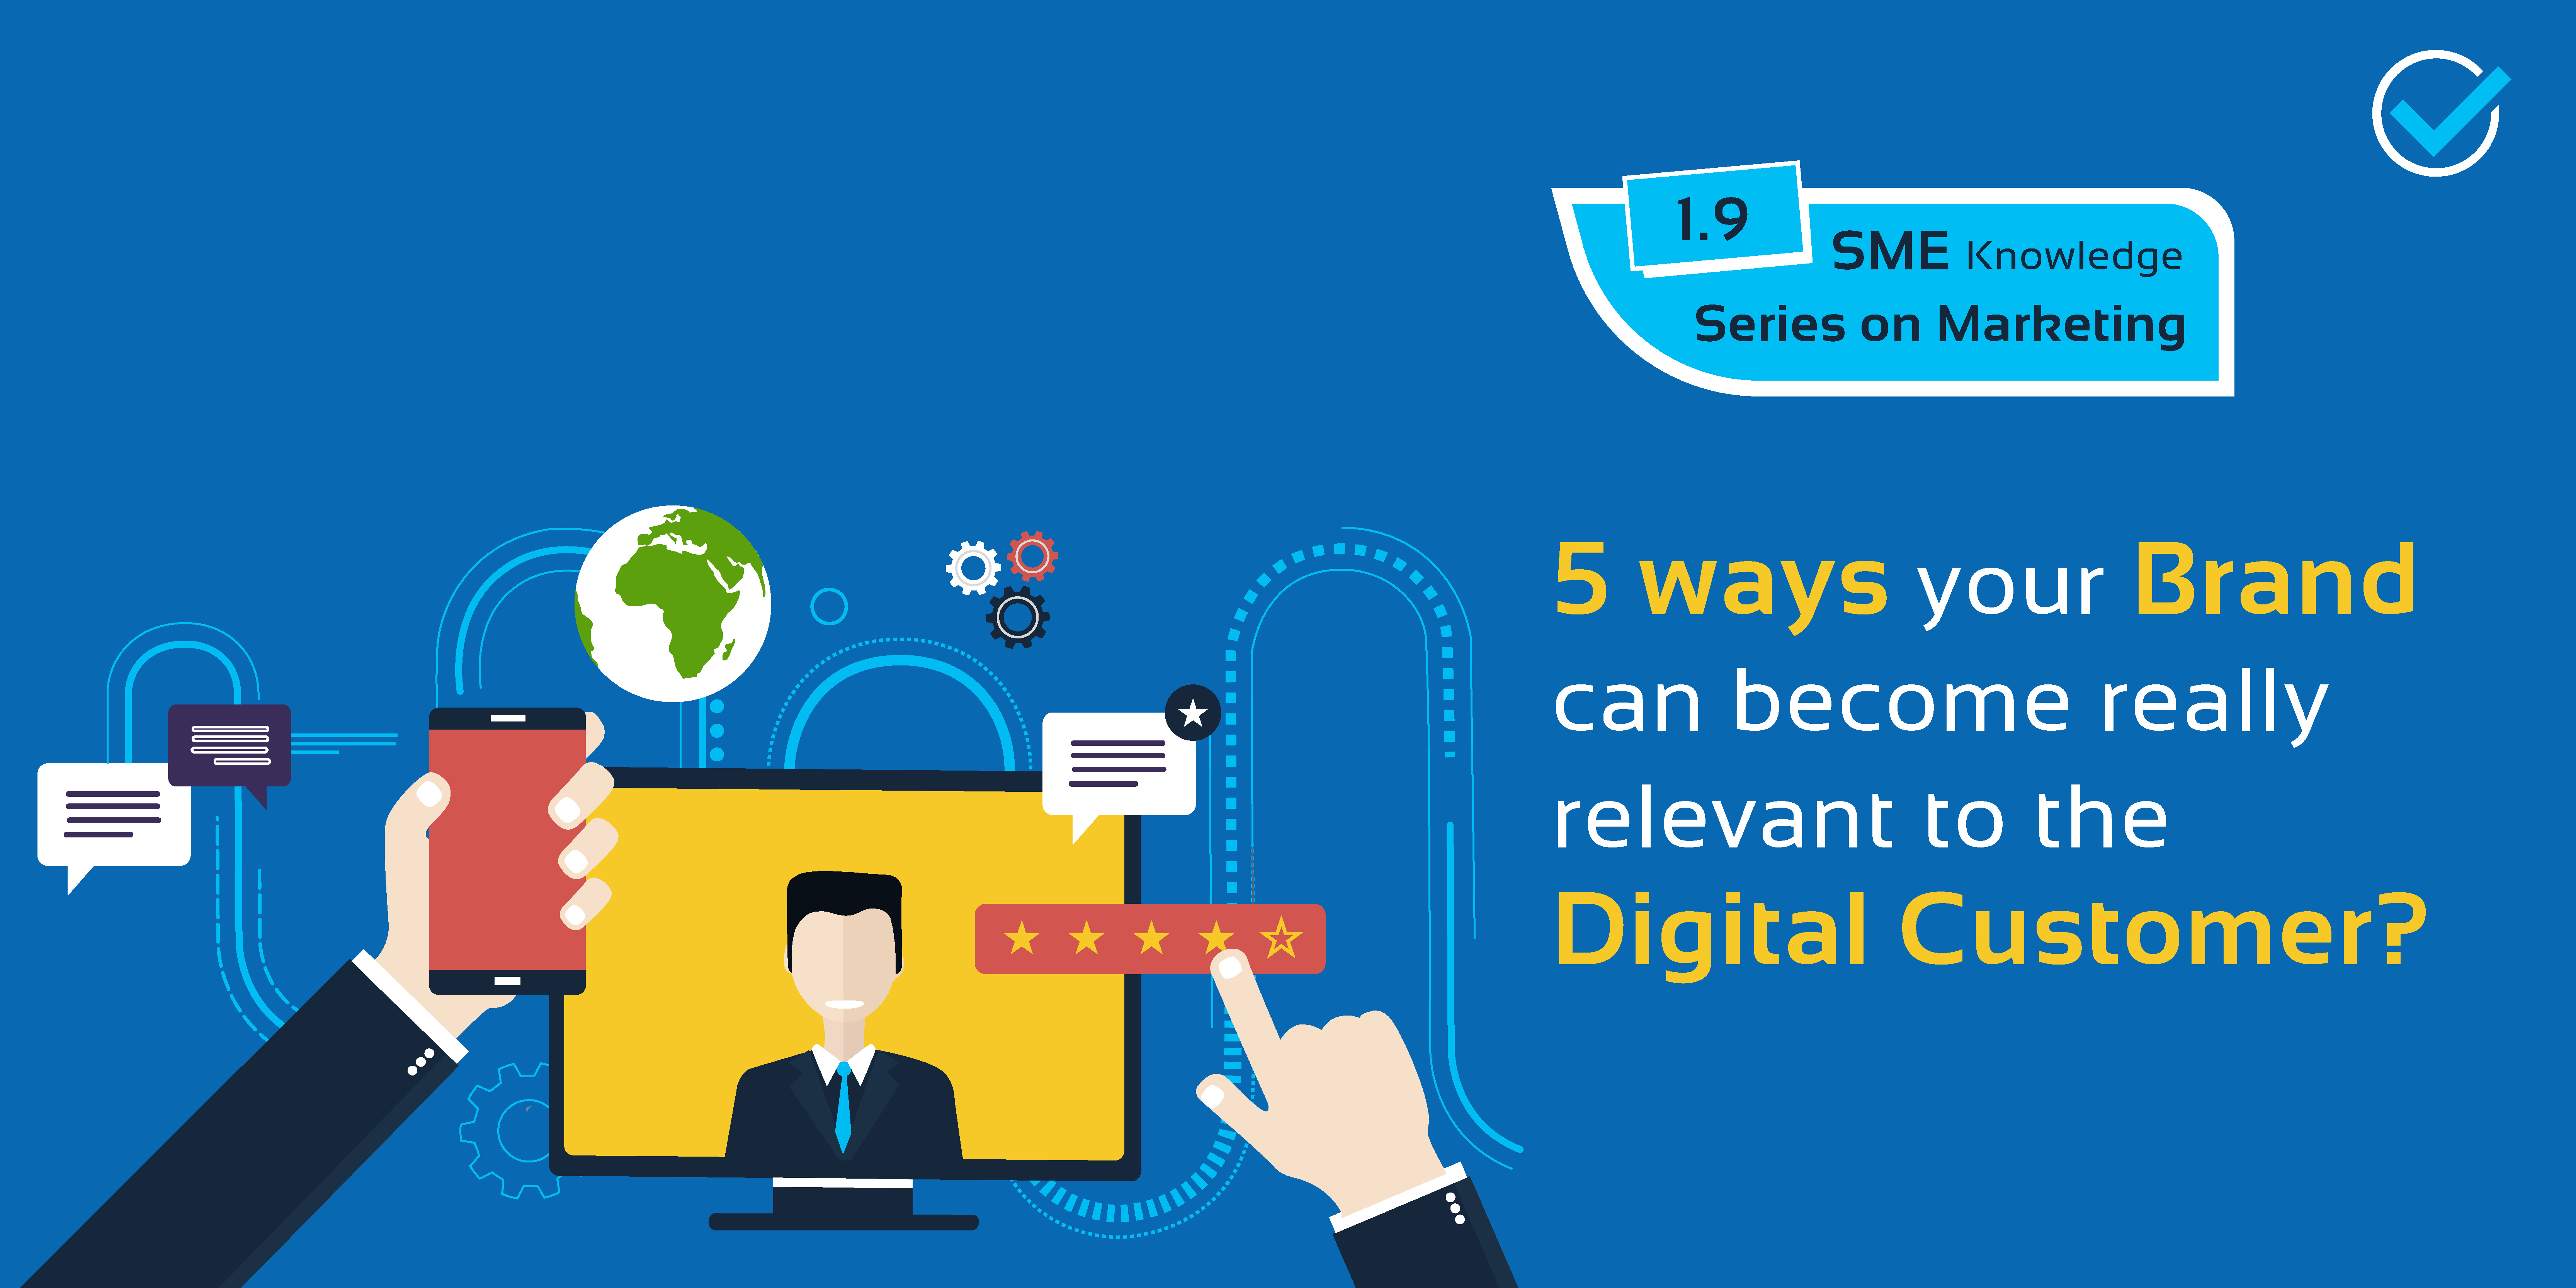 5 ways your Brand can become really relevant to the Digital Customer